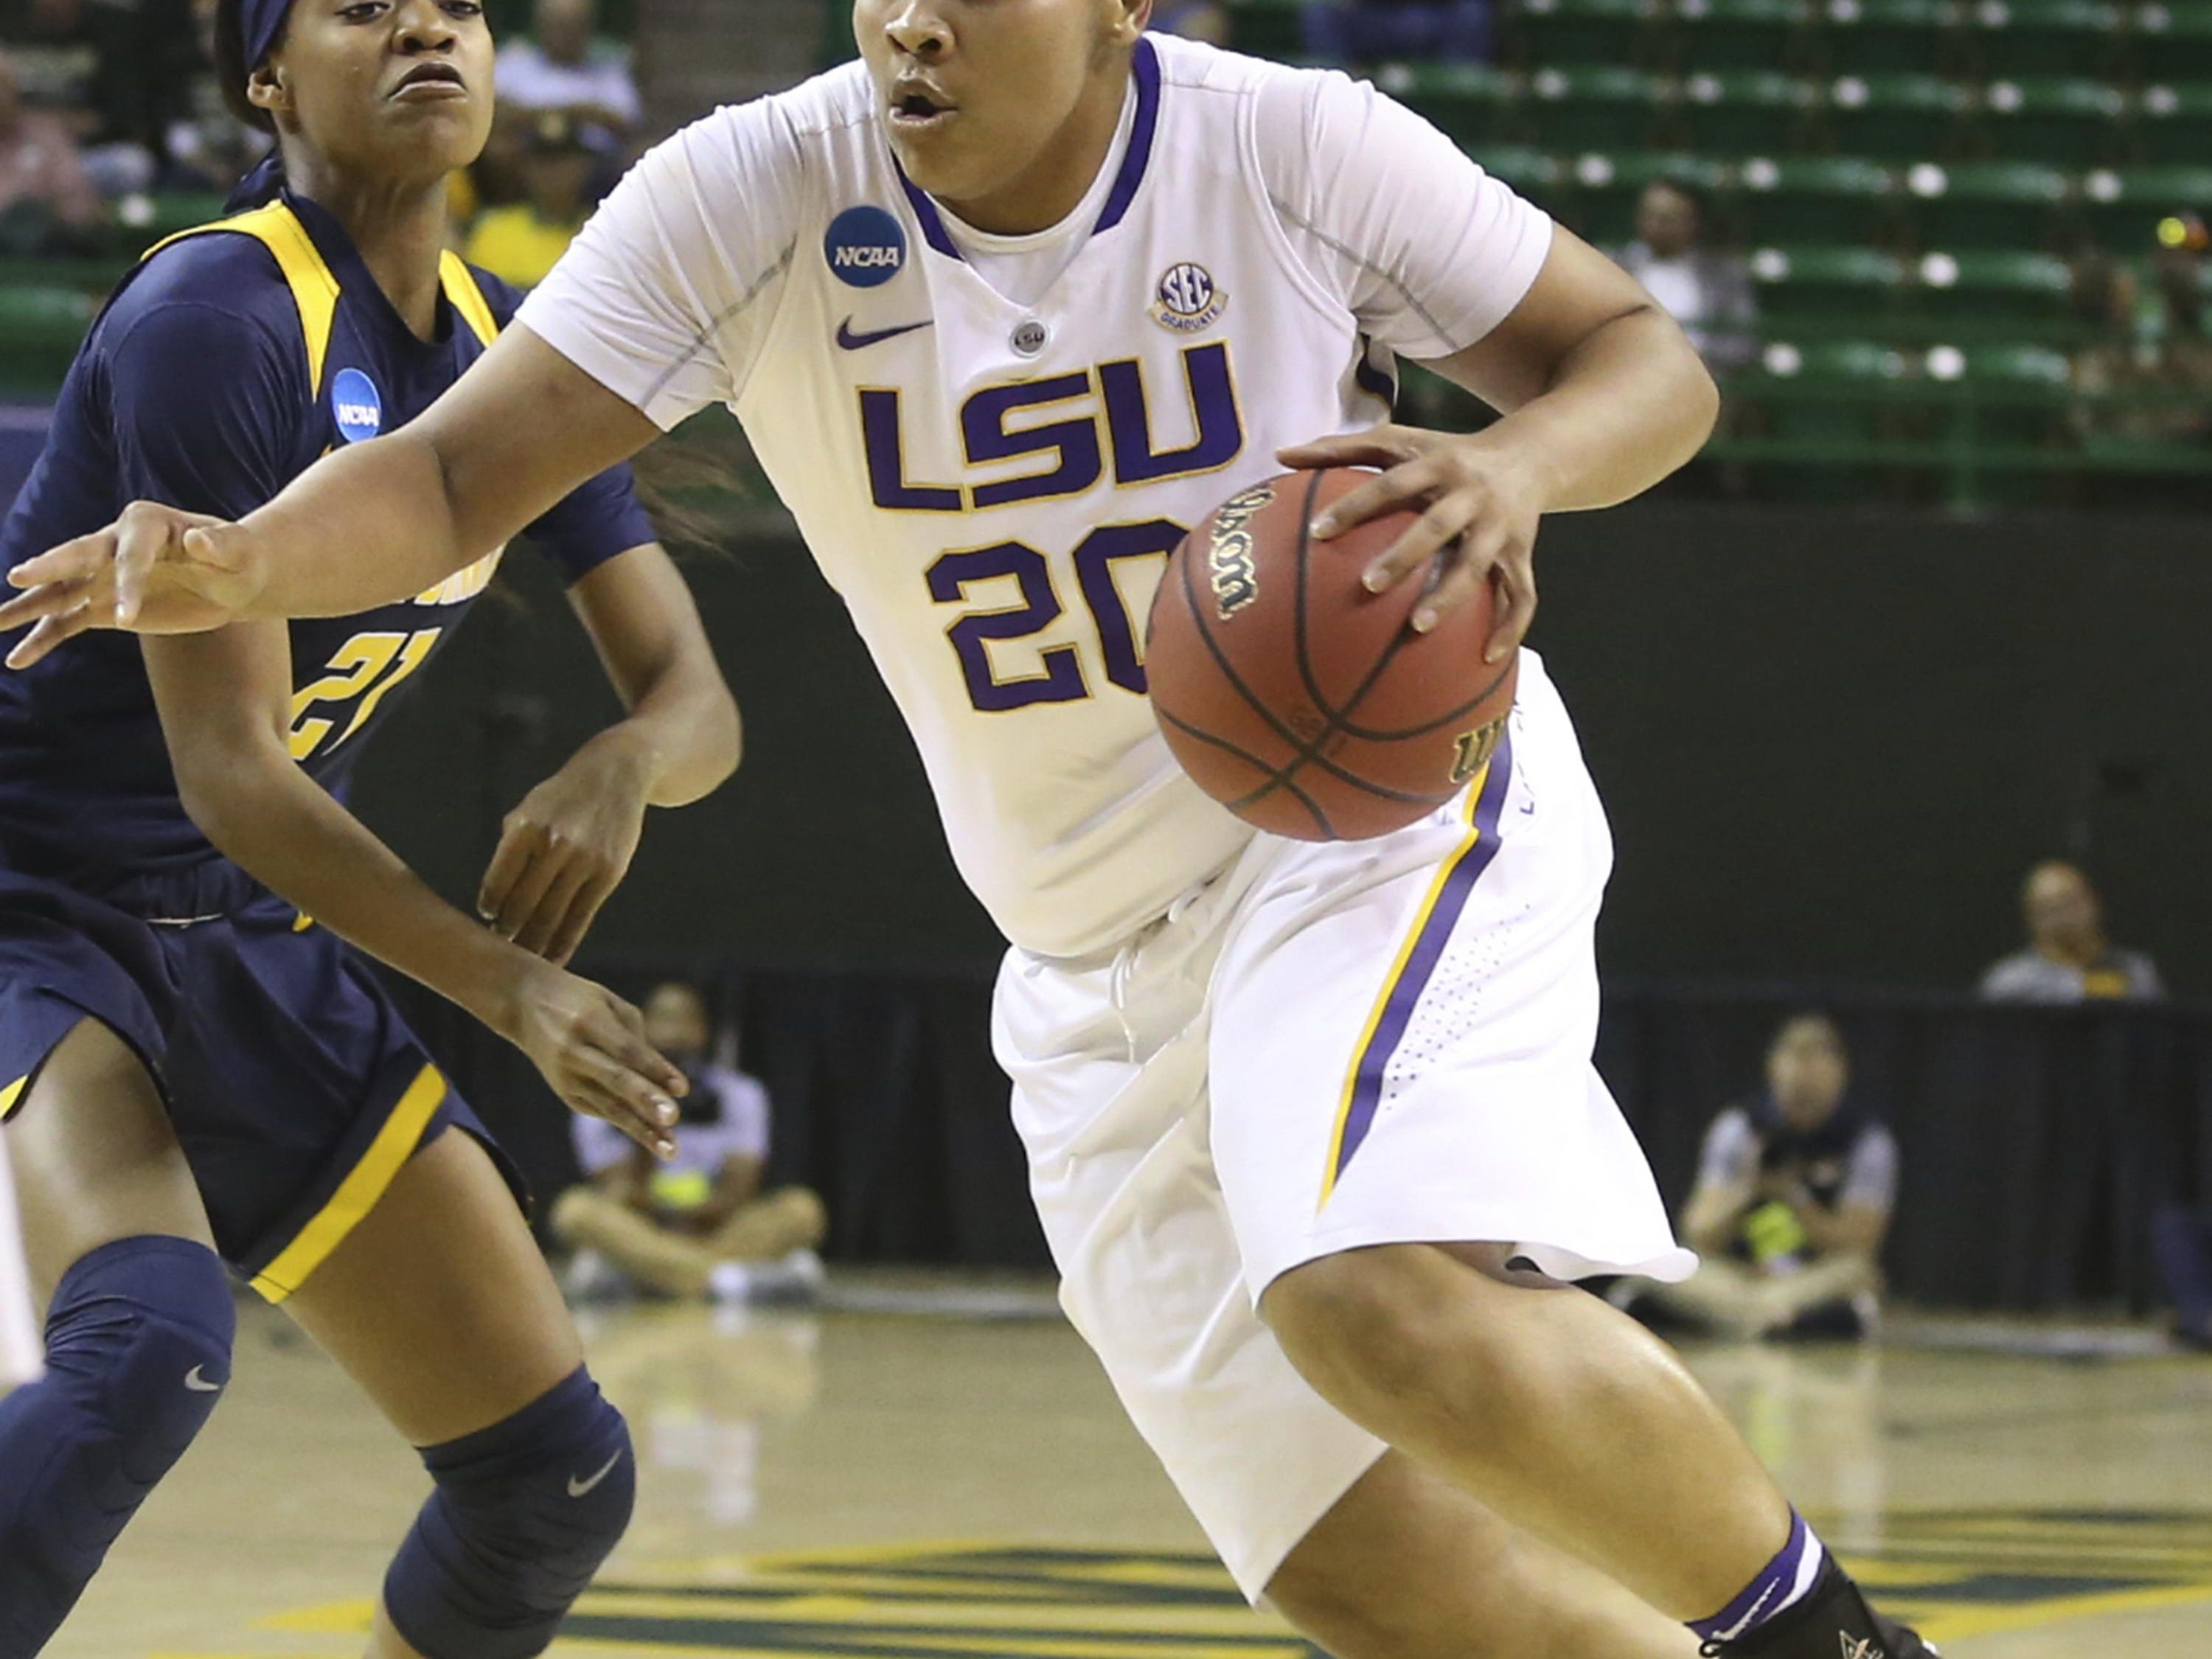 LSU forward Alexis Hyder drives past California guard Mi'Cole Cayton on Saturday night during the teams' opening-round NCAA Tournament game played in Waco, Texas.